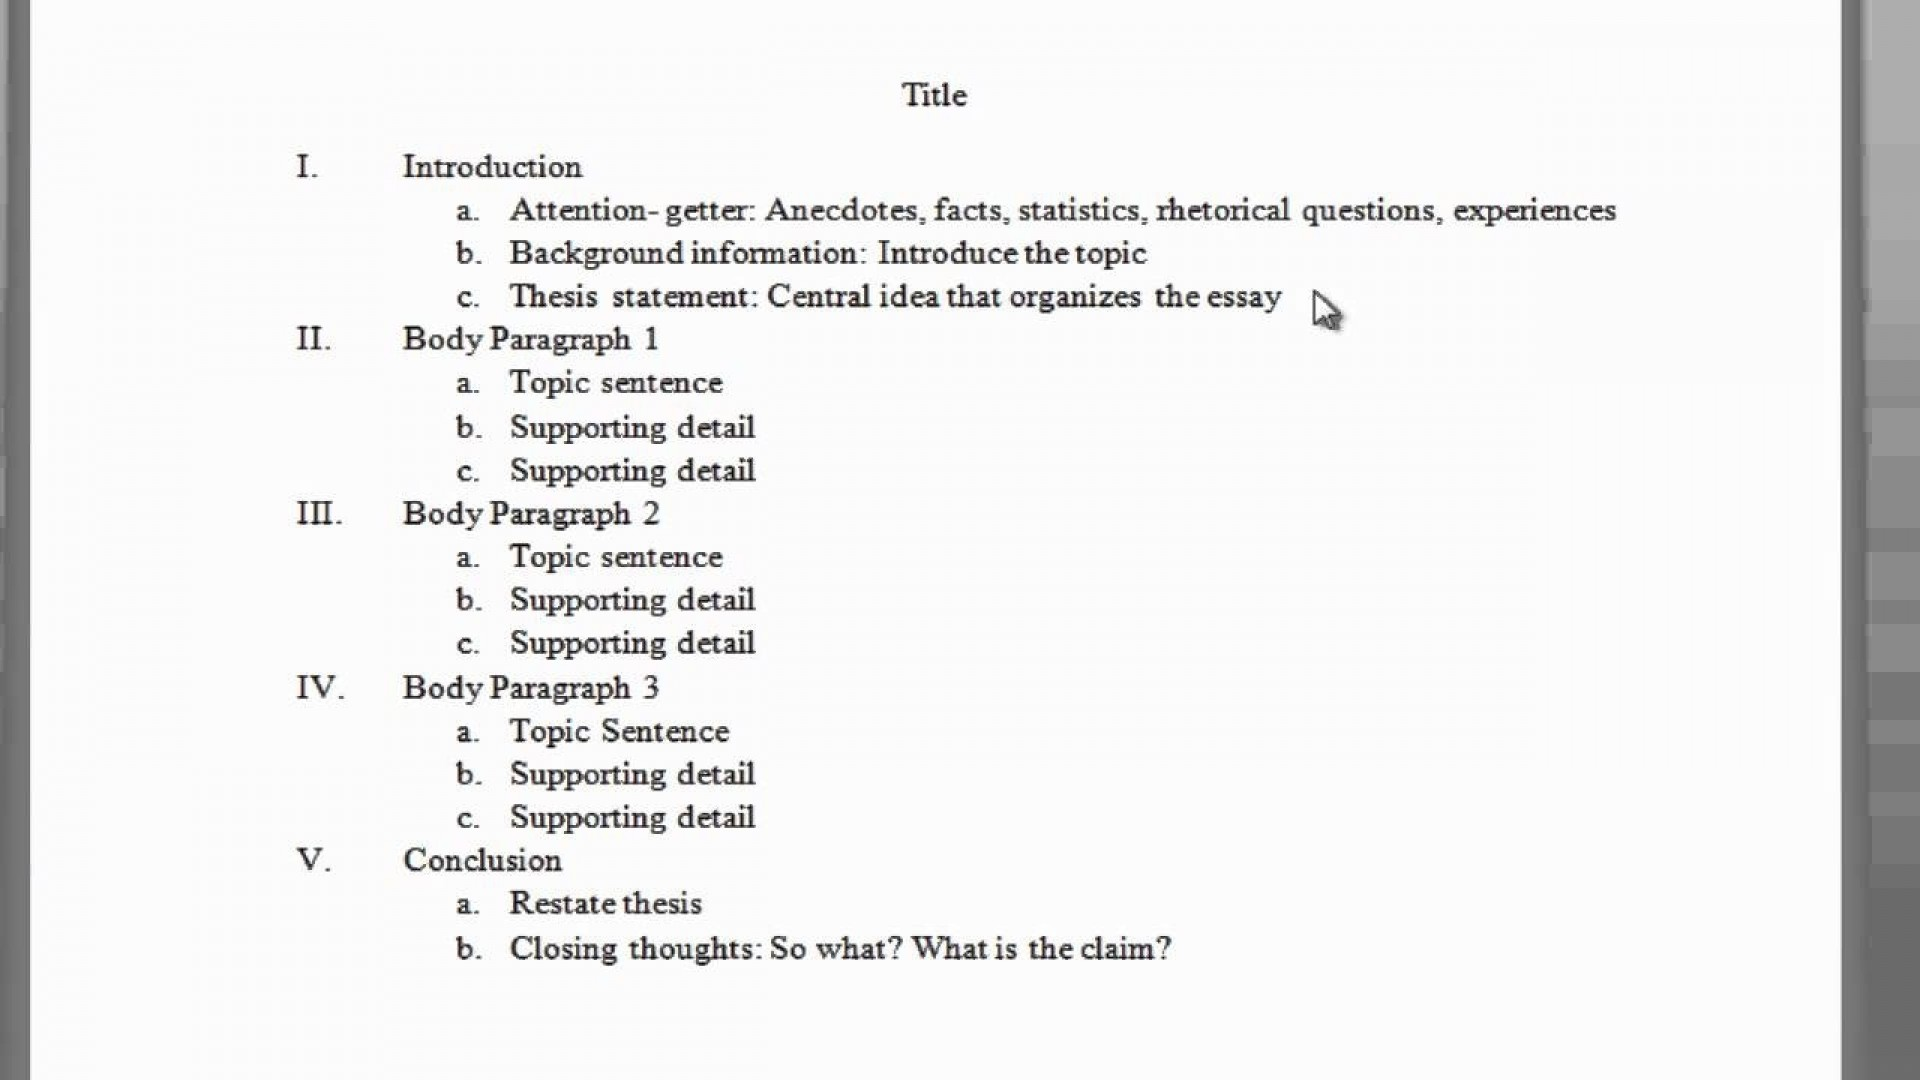 015 Paragraph Essay Structure Writings And Essays How To Start Body In An Argumentative Outline Youtube Intende Informative Third Expository Examples Narrative Analytical Persuasive Example Phenomenal What Is A Claim Meant By Brainly Opposing 1920